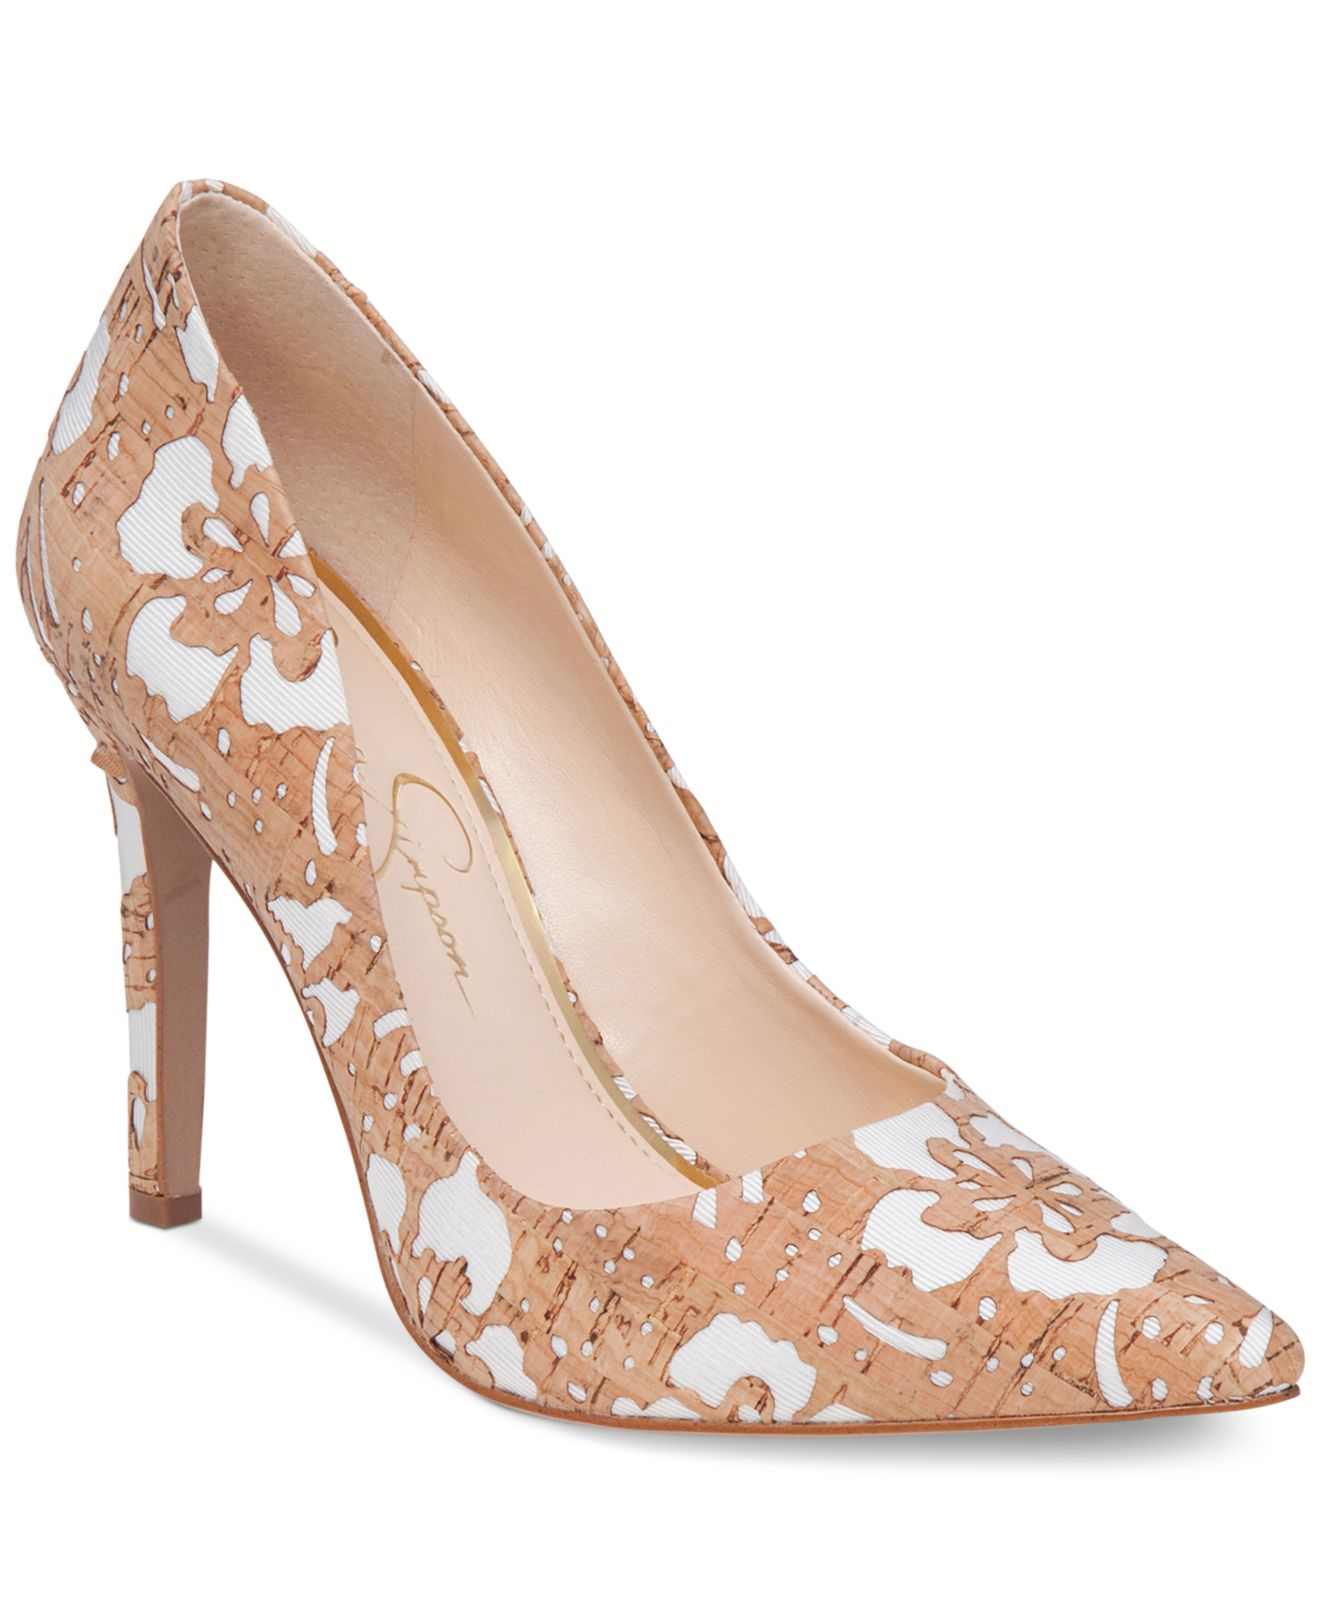 7ad19190771b Lyst - Jessica Simpson Cassani Pointed-toe Pumps in Natural